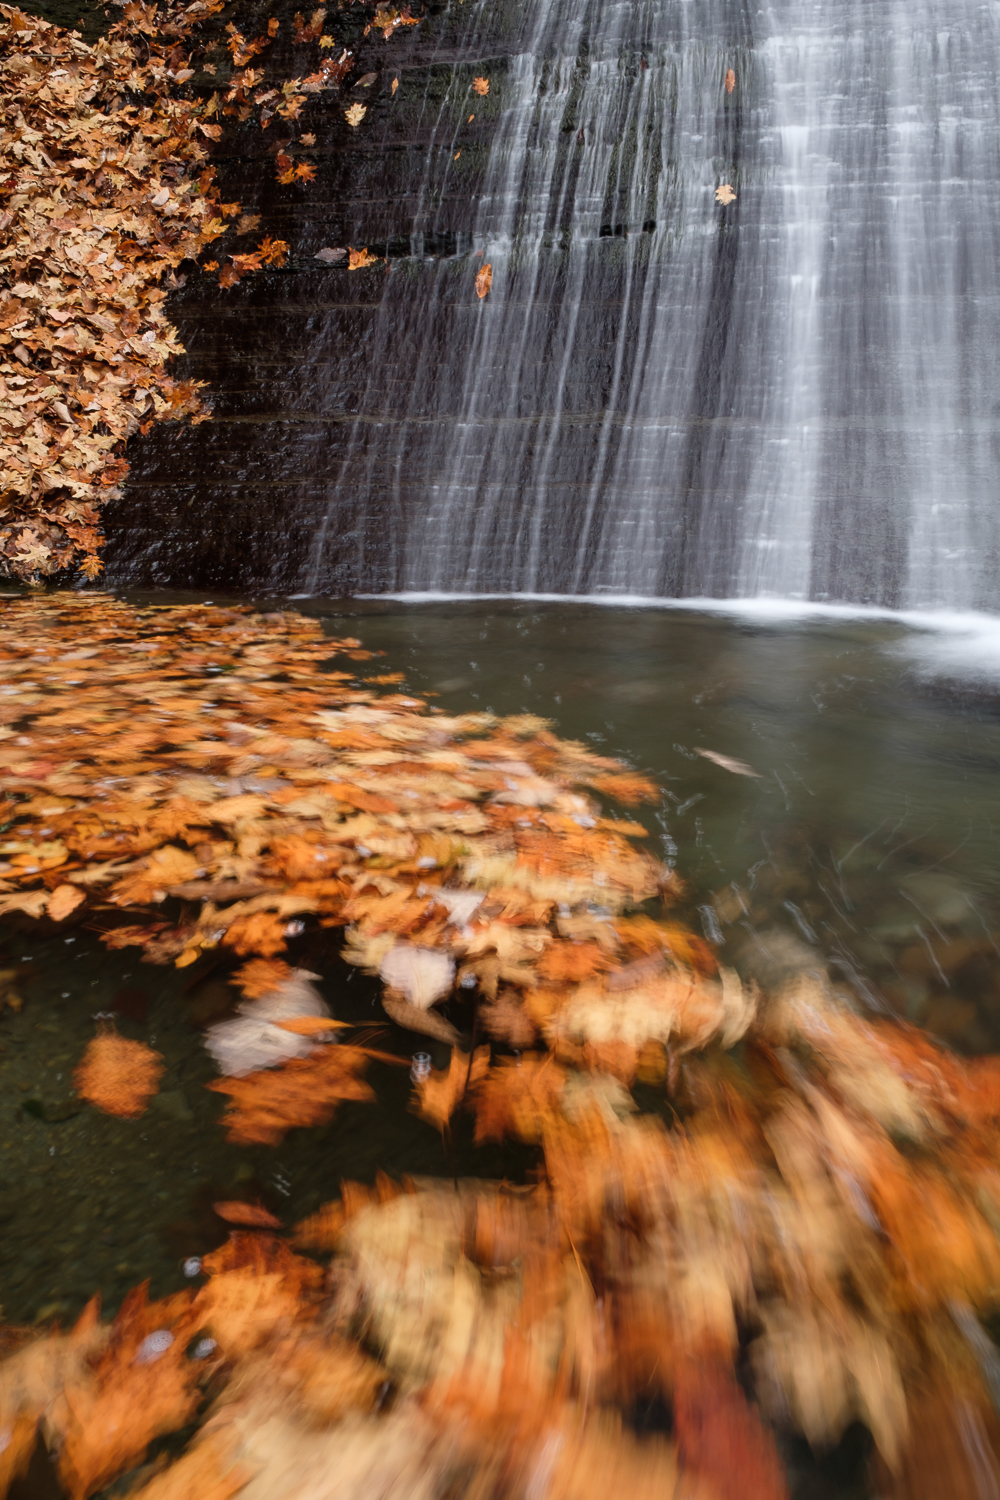 Water flows over a slab of exposed rock in one of the many gorges in the Finger Lakes region of New York State.